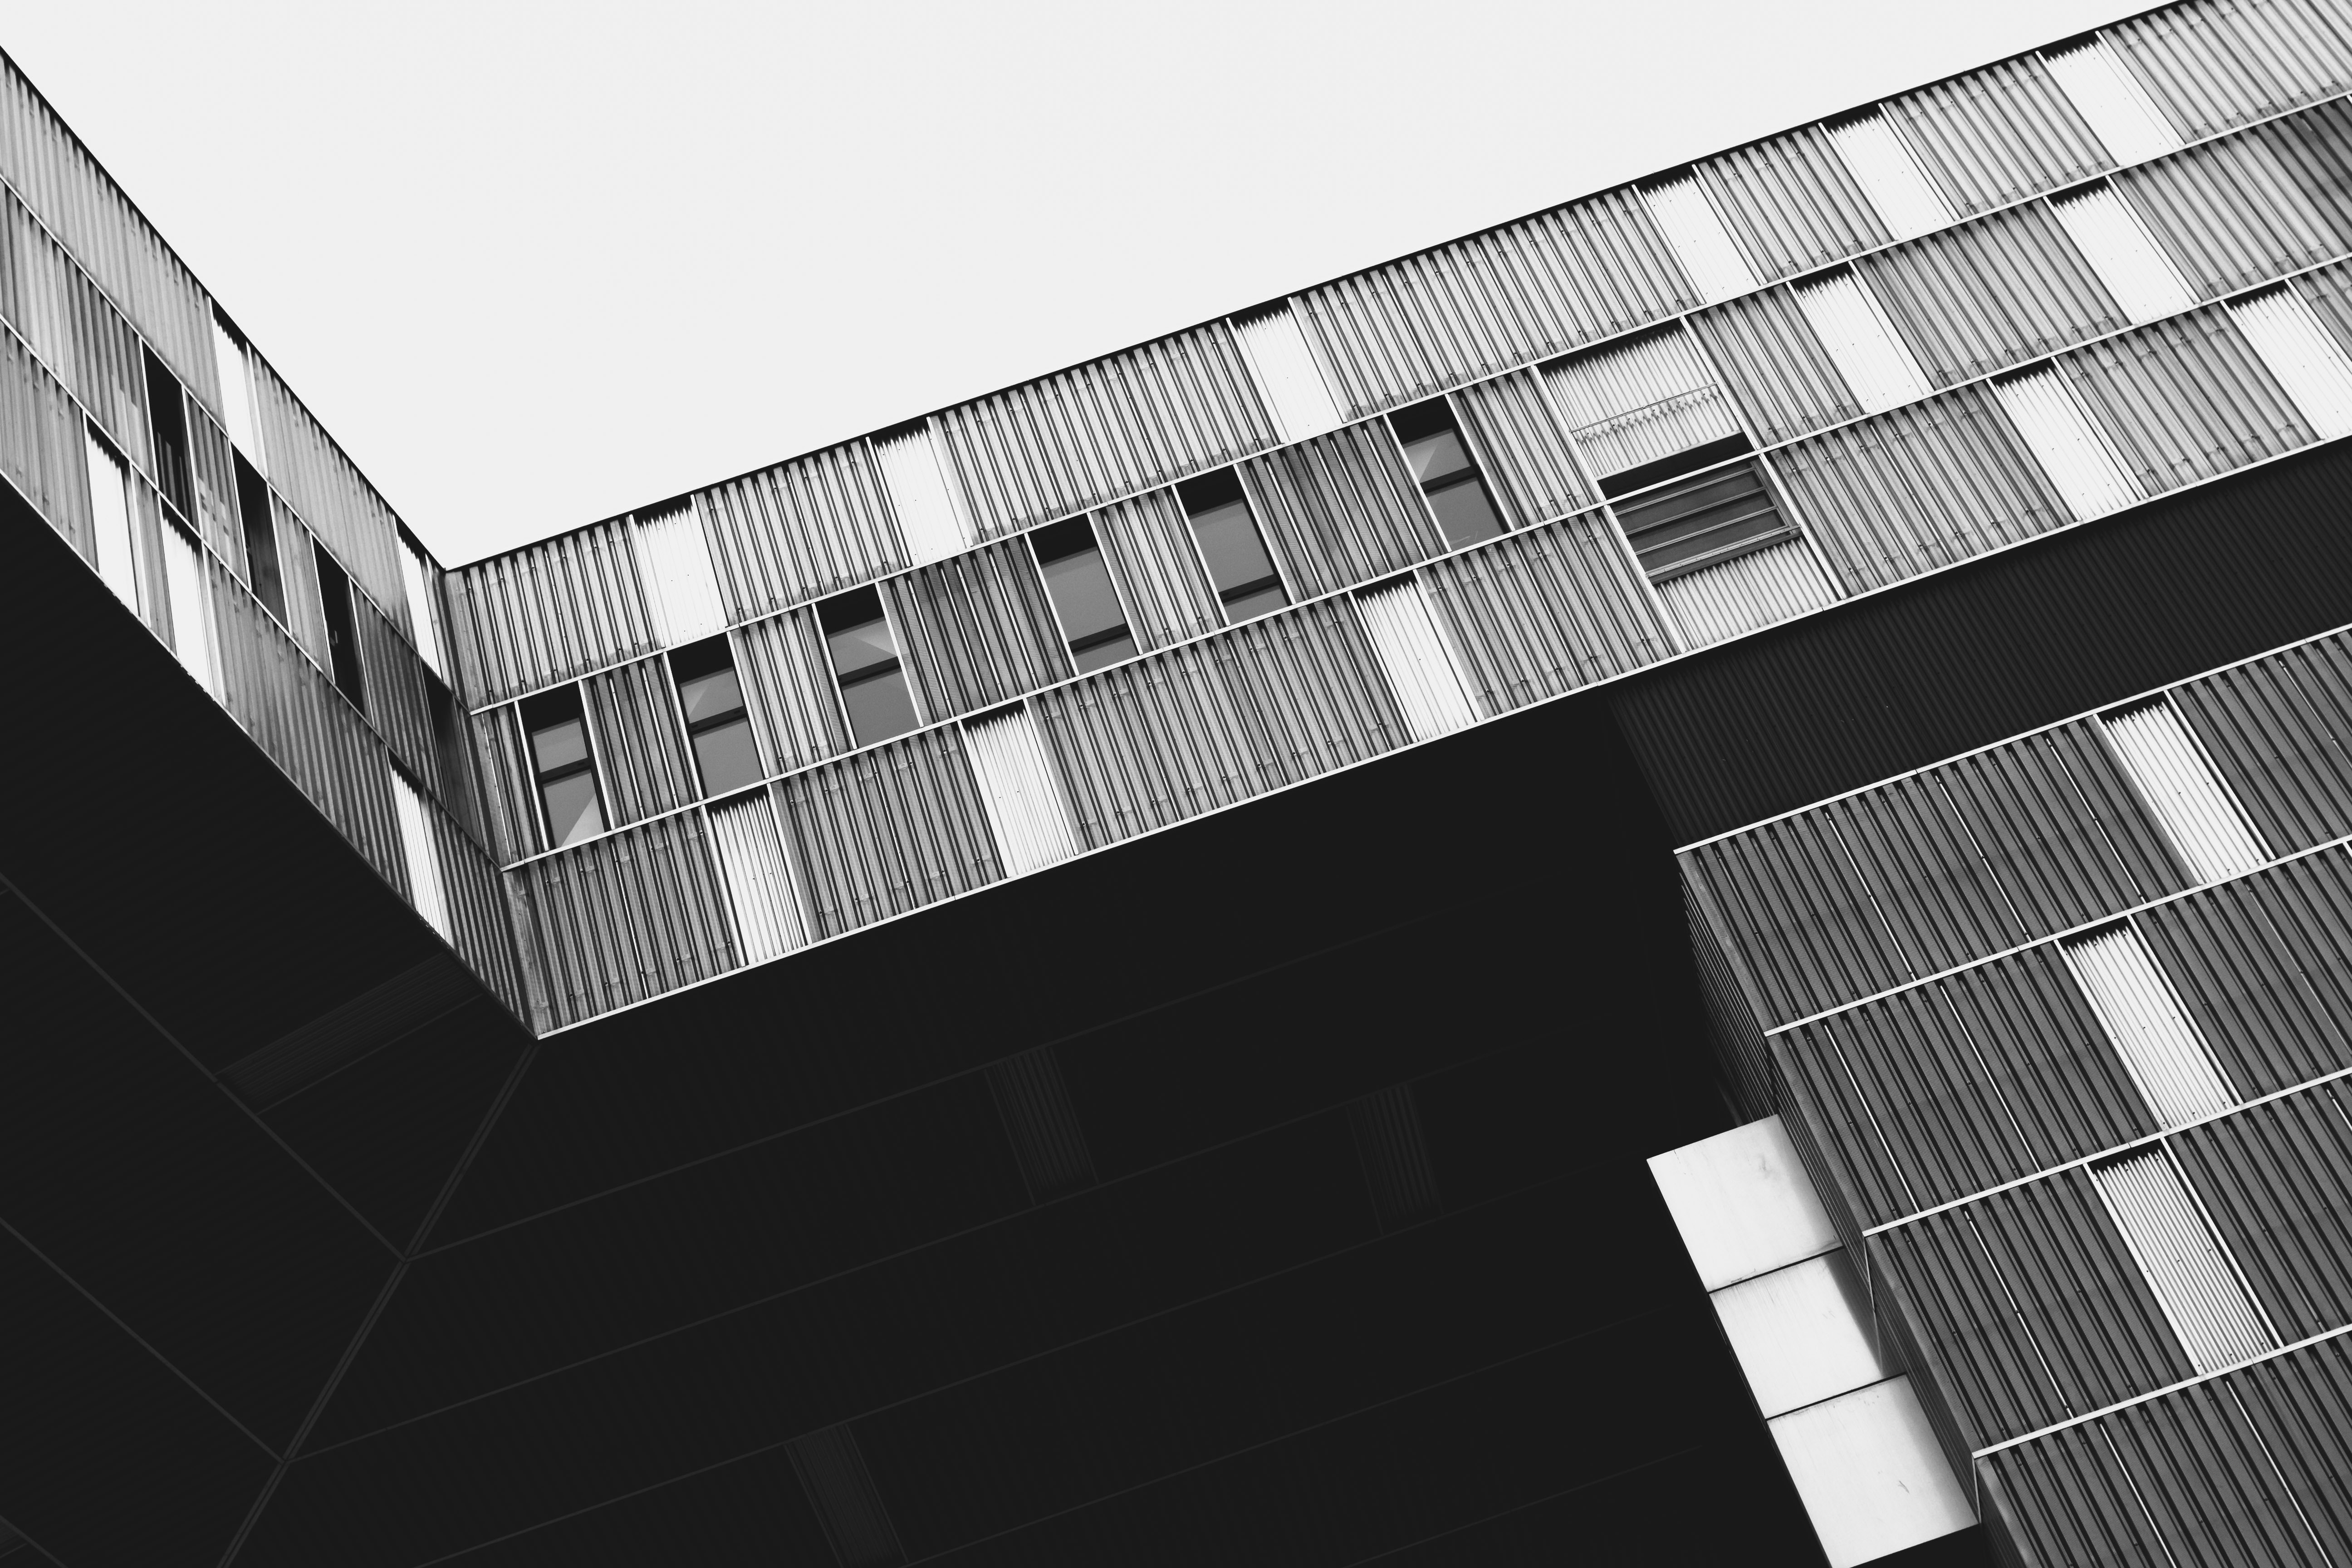 A black-and-white shot of an industrial-style building in Vienna